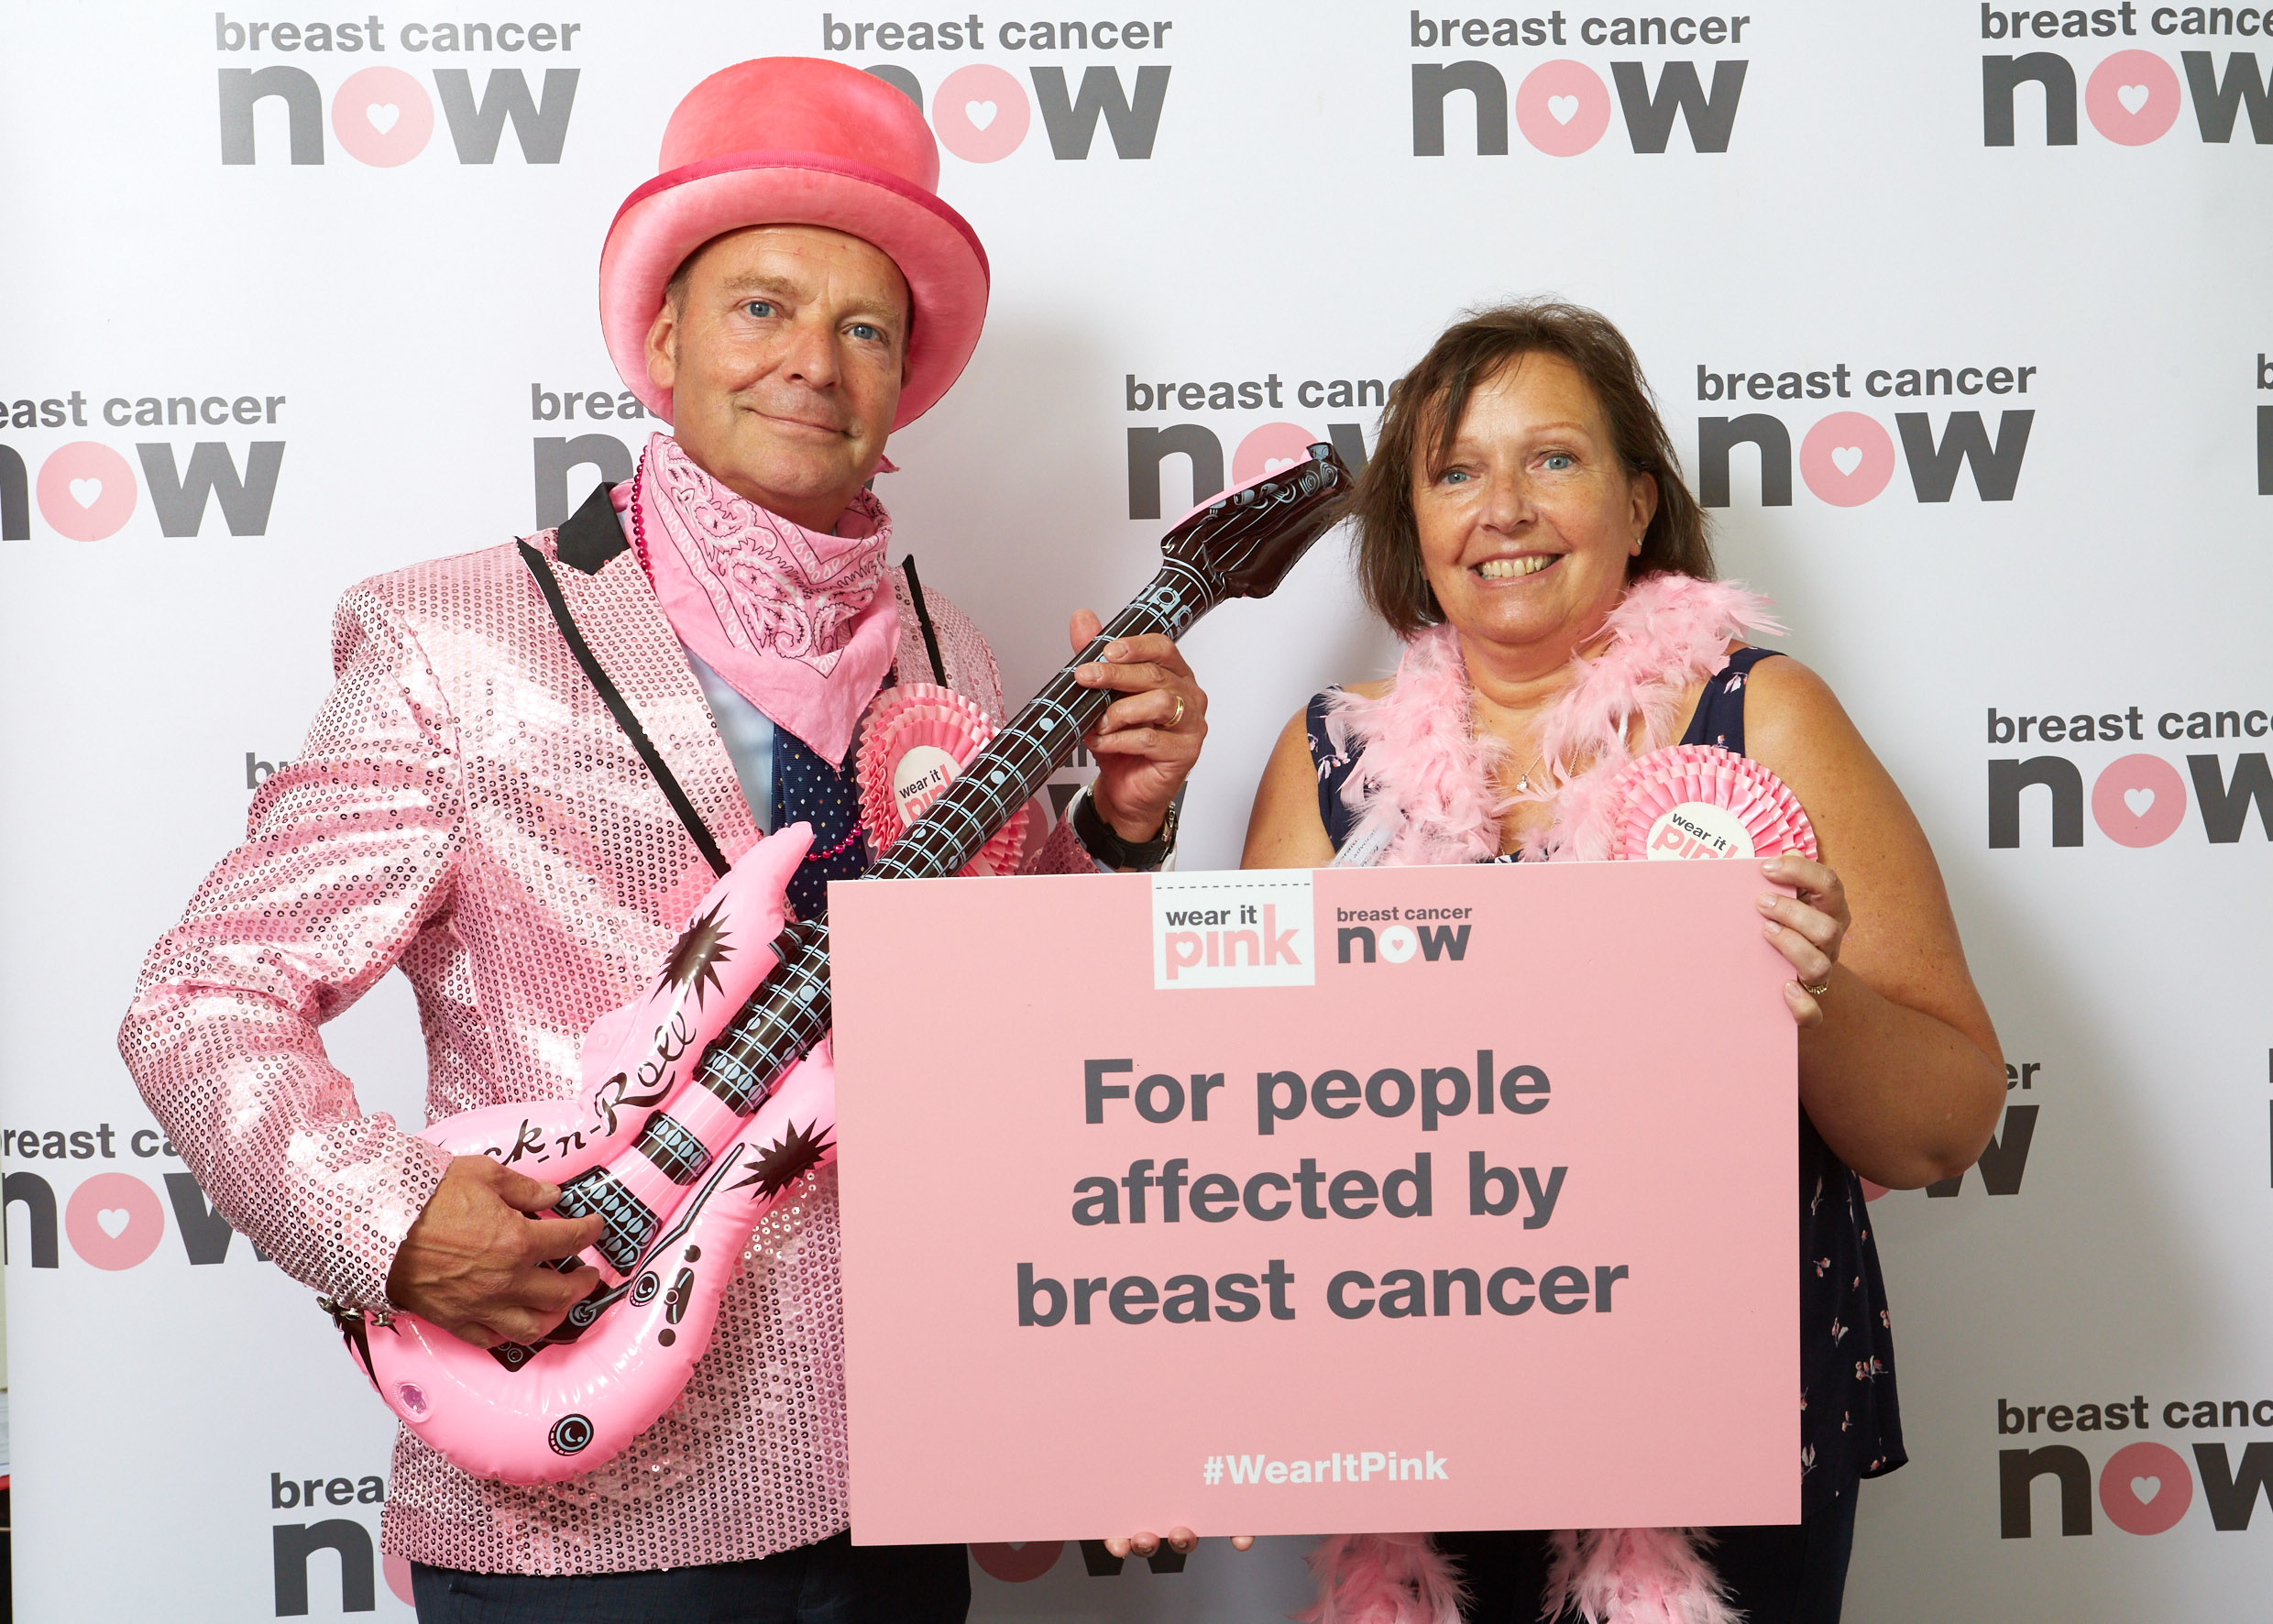 CM with Breast Cancer Now Wear it Pink Sept19.jpg